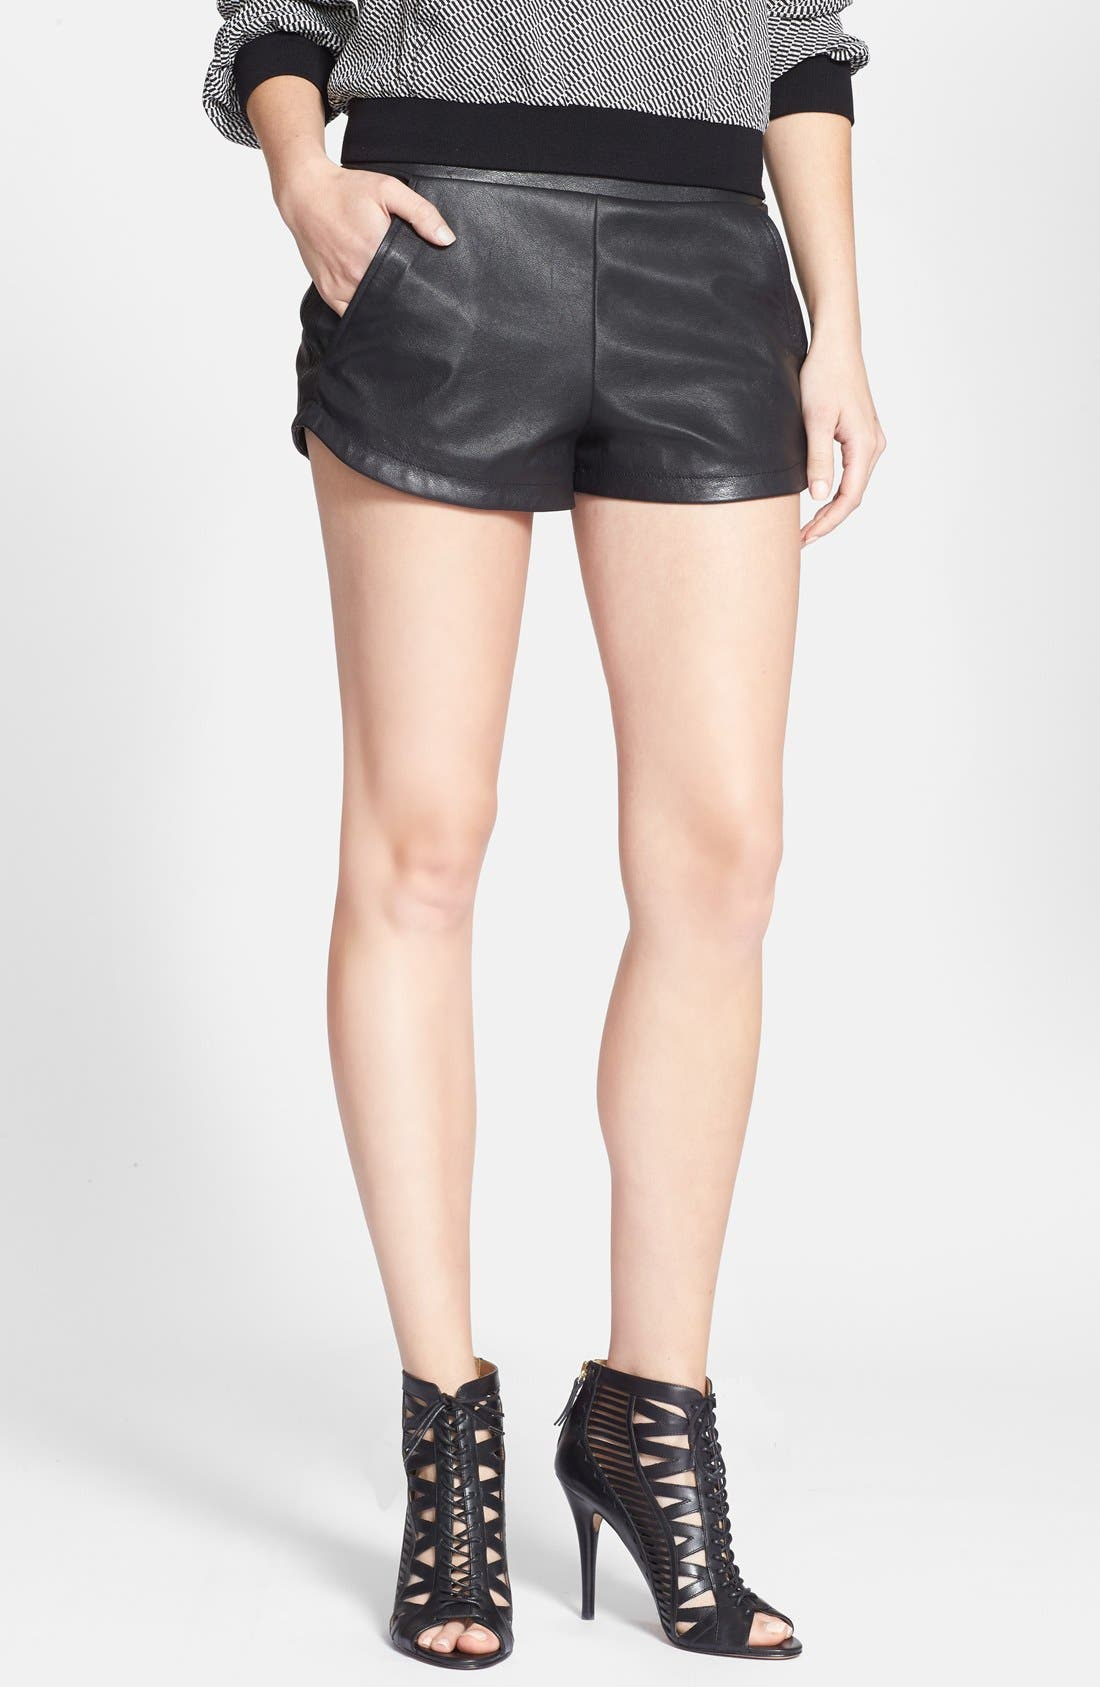 Alternate Image 1 Selected - Max & Mia Faux Leather Athletic Shorts